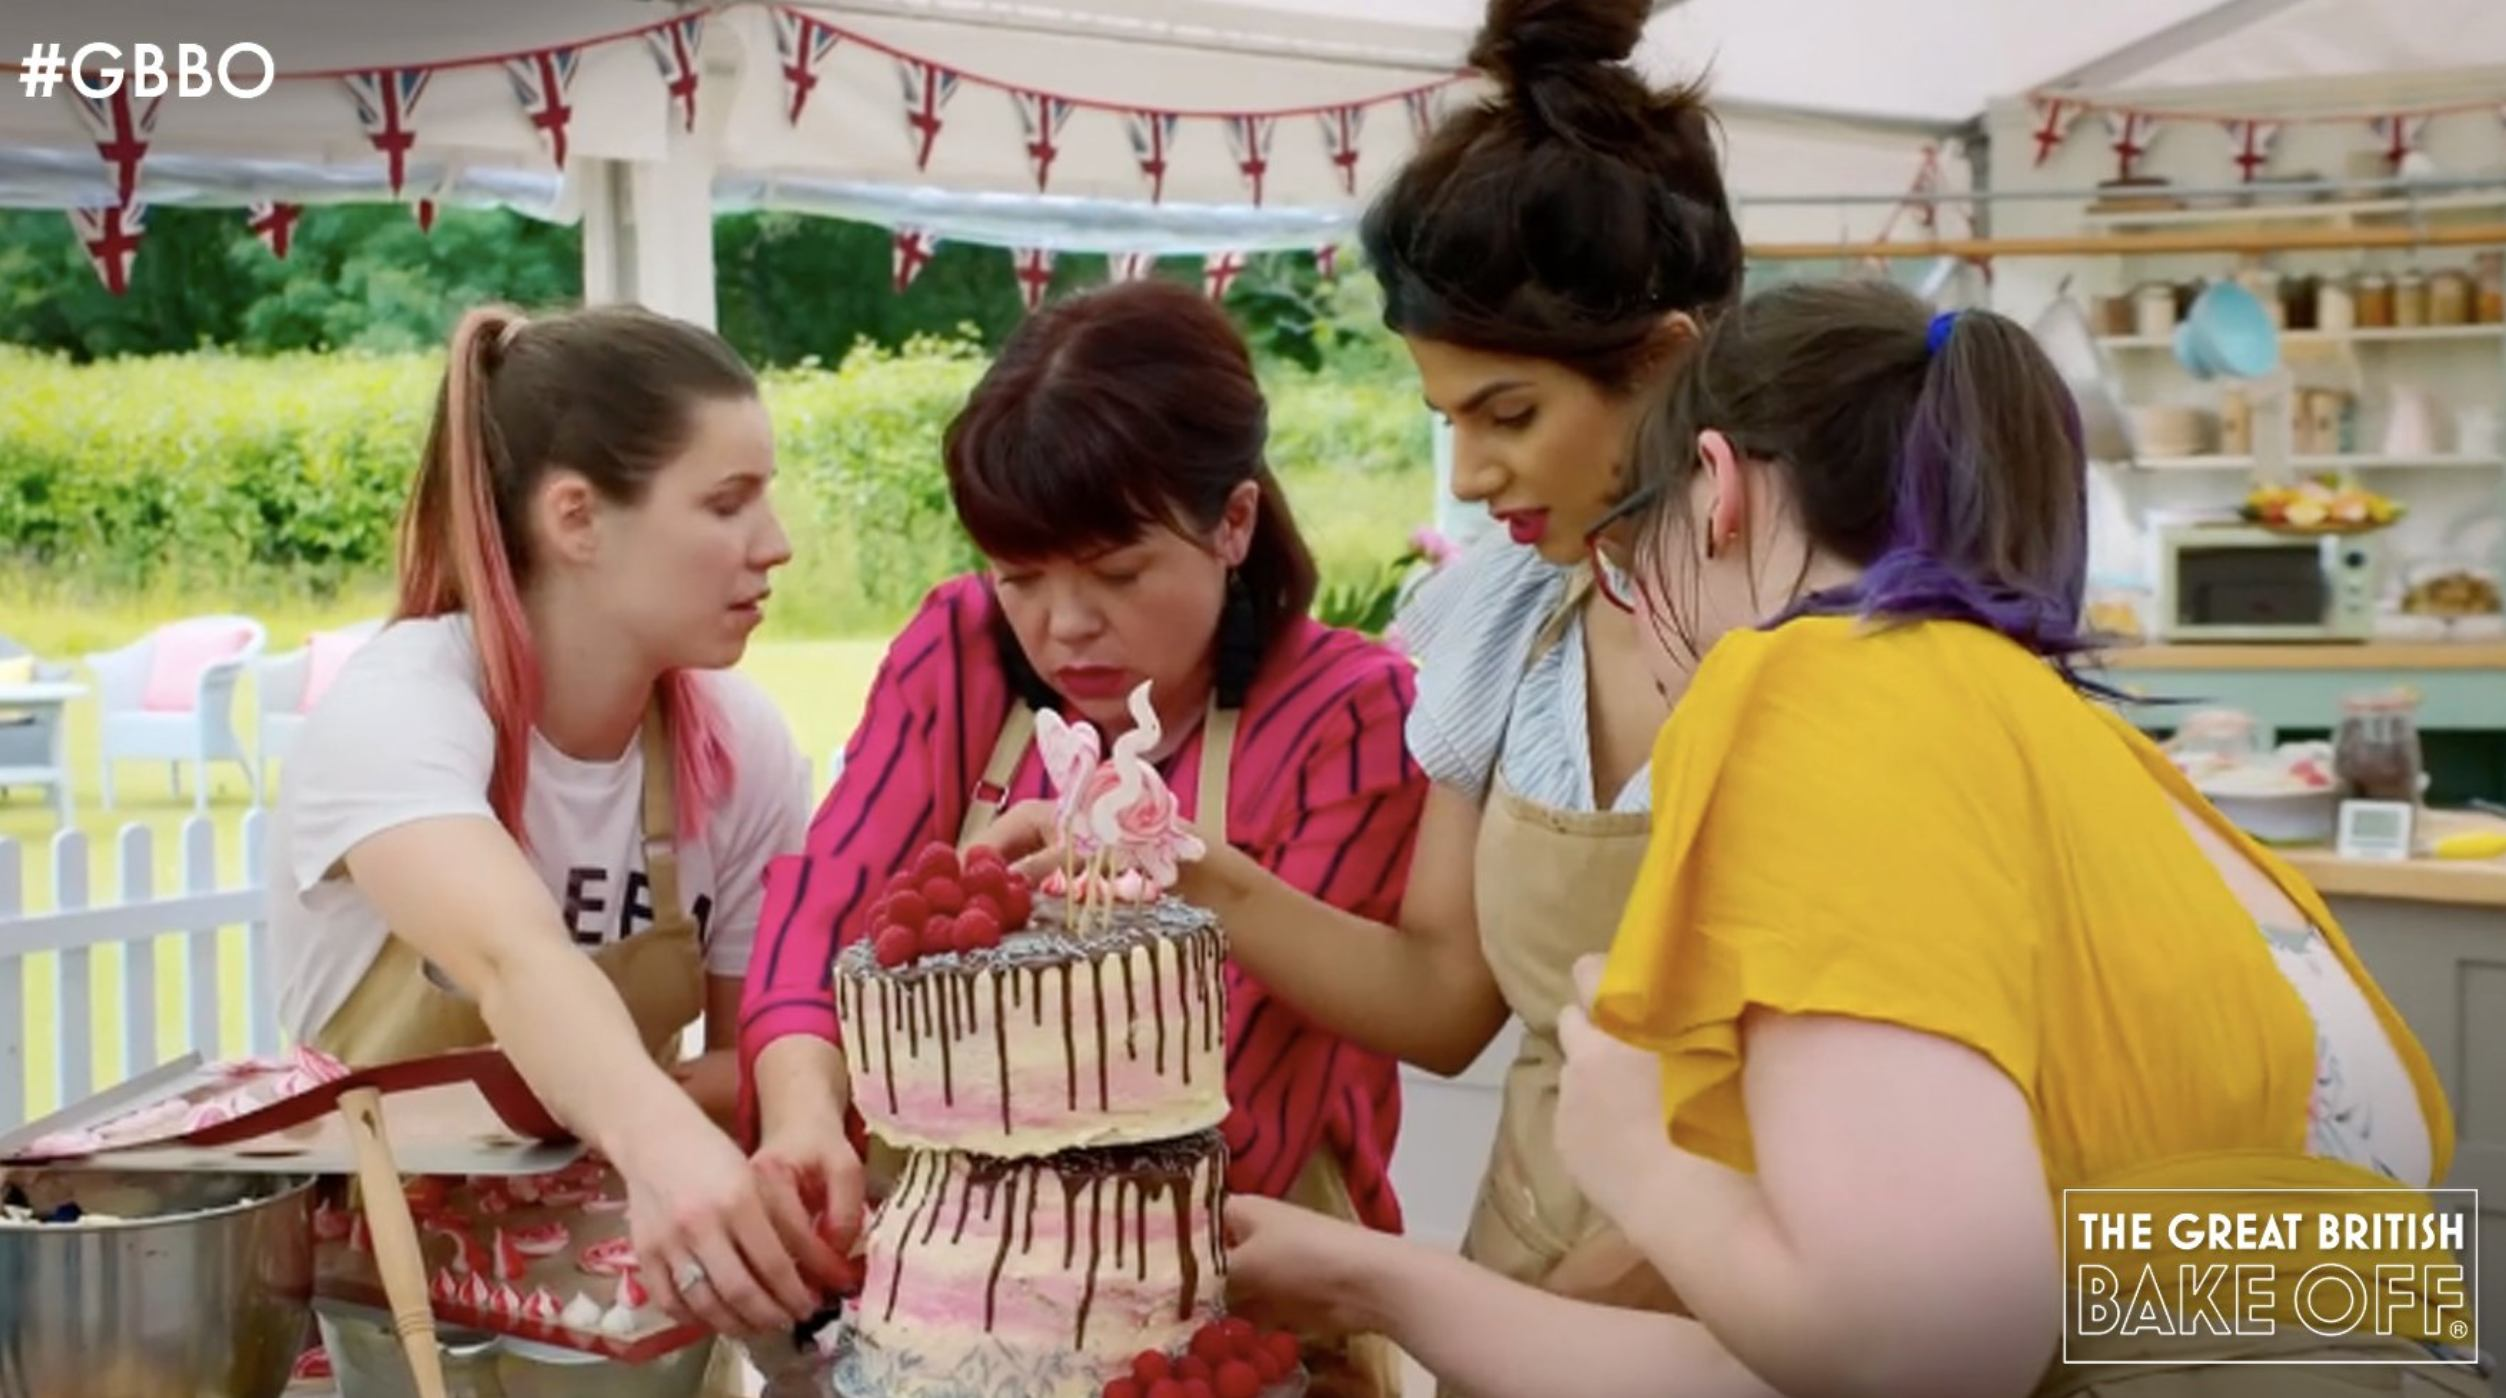 Contestants of GBBO during vegan week